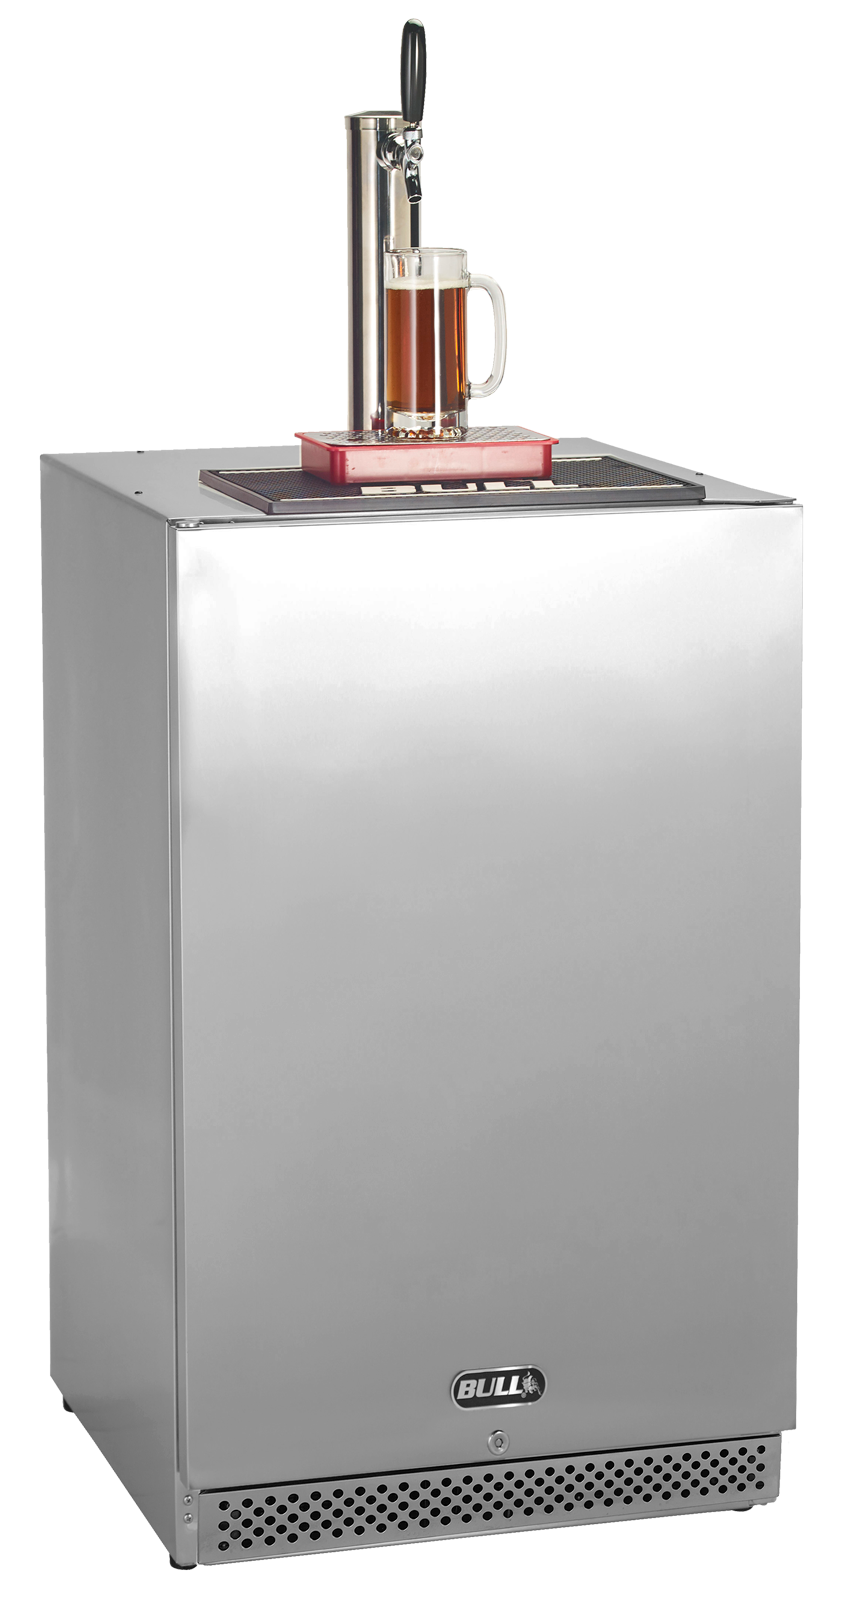 Bull Outdoor Rated Kegorator , BBQ Components ,  europe, Bull europe limited, bull bbq europe